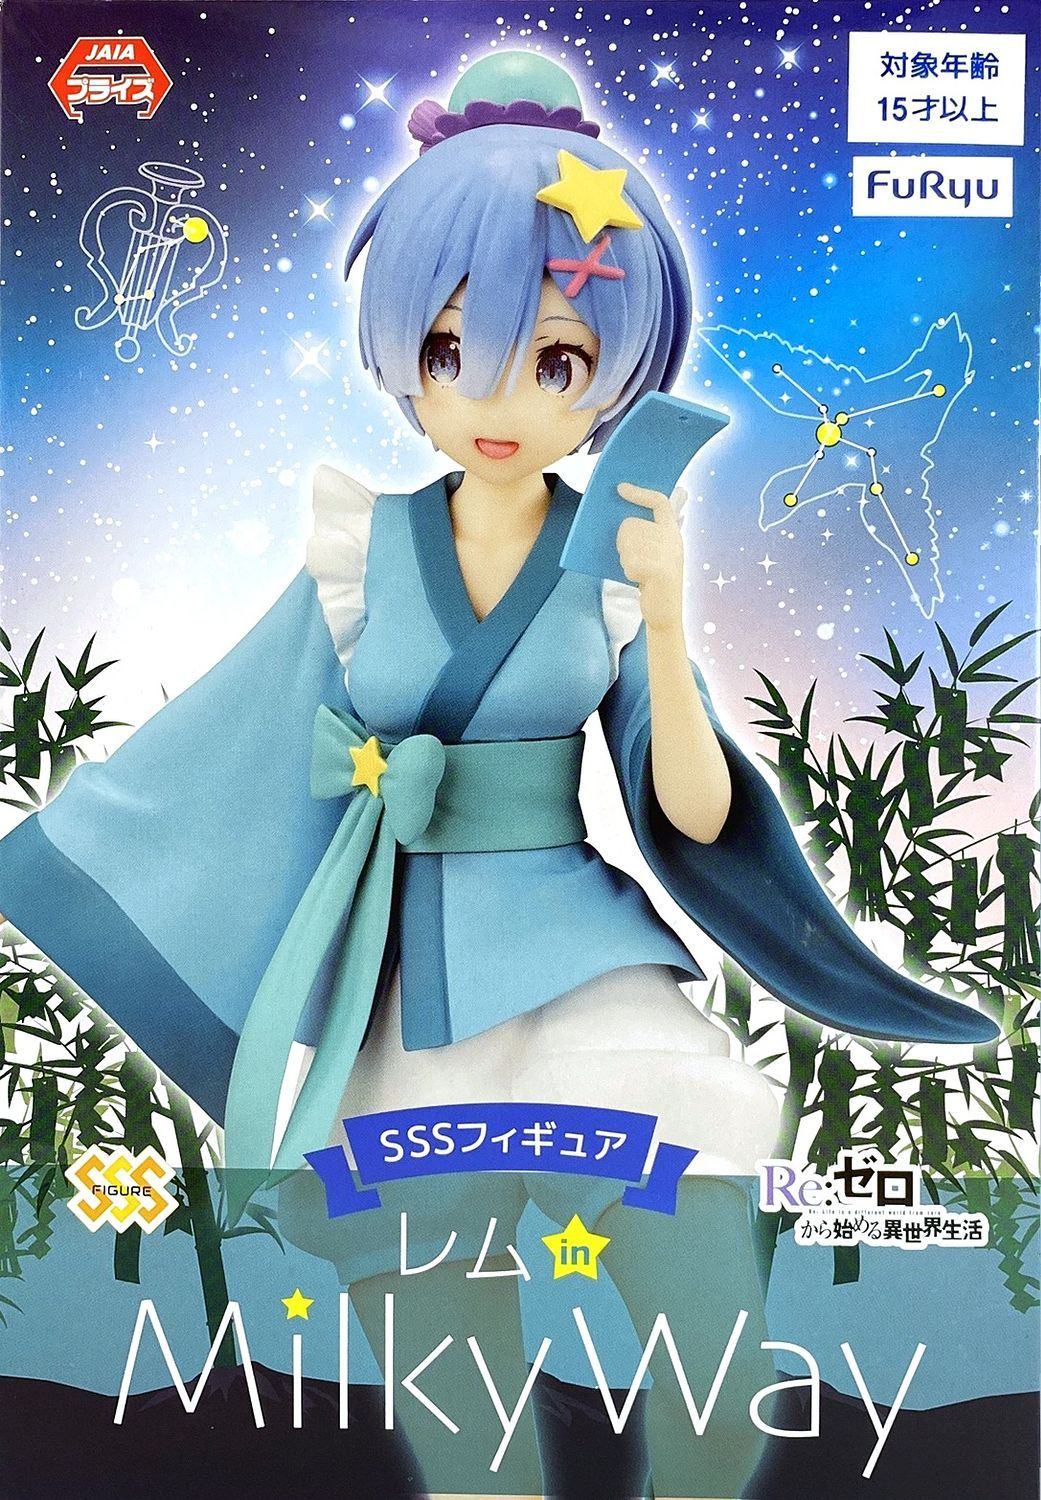 Rem in Milky Way, Re:Zero - Starting Life in Another World, SSS, Furyu